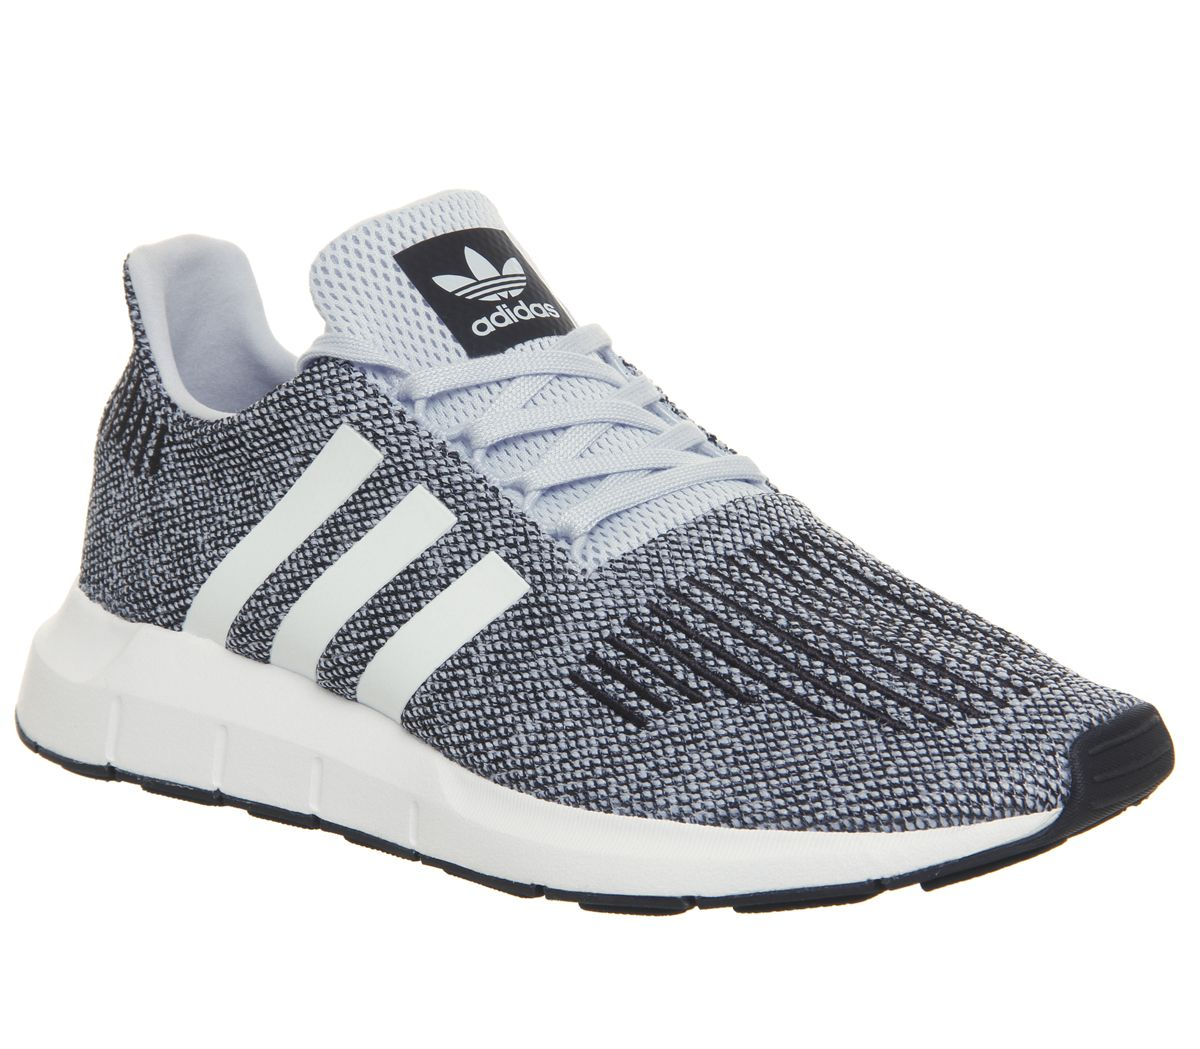 5488a0f03f8db adidas Swift Run Trainers Aero Blue White - Unisex Sports